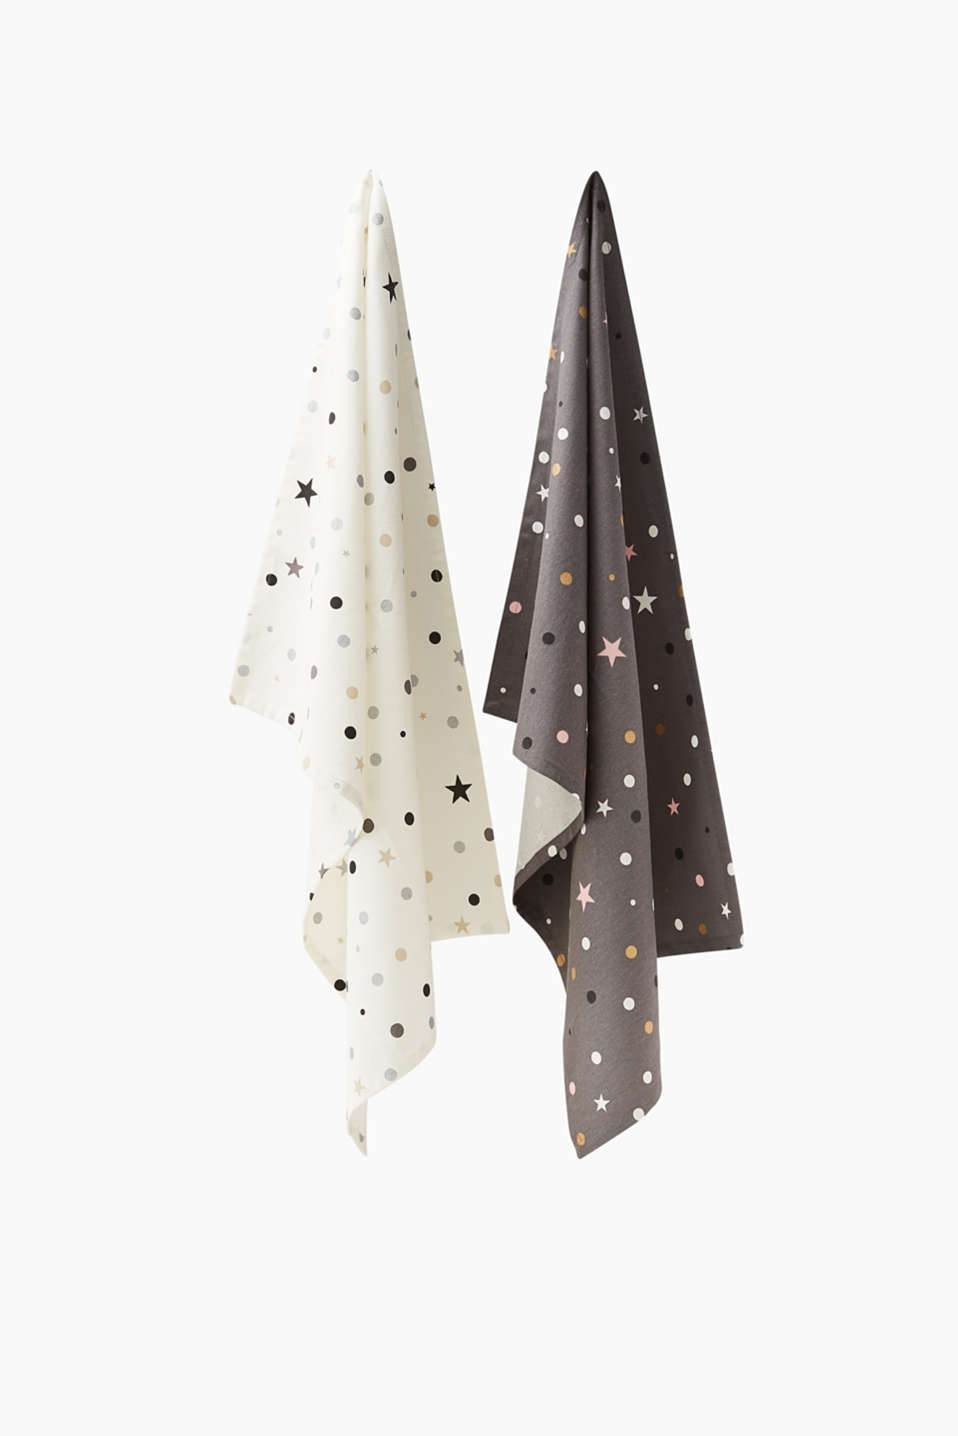 SHIMMER Collection - polka-dots and stars, some in a metallic look, make this double pack of tea towels eye-catching.